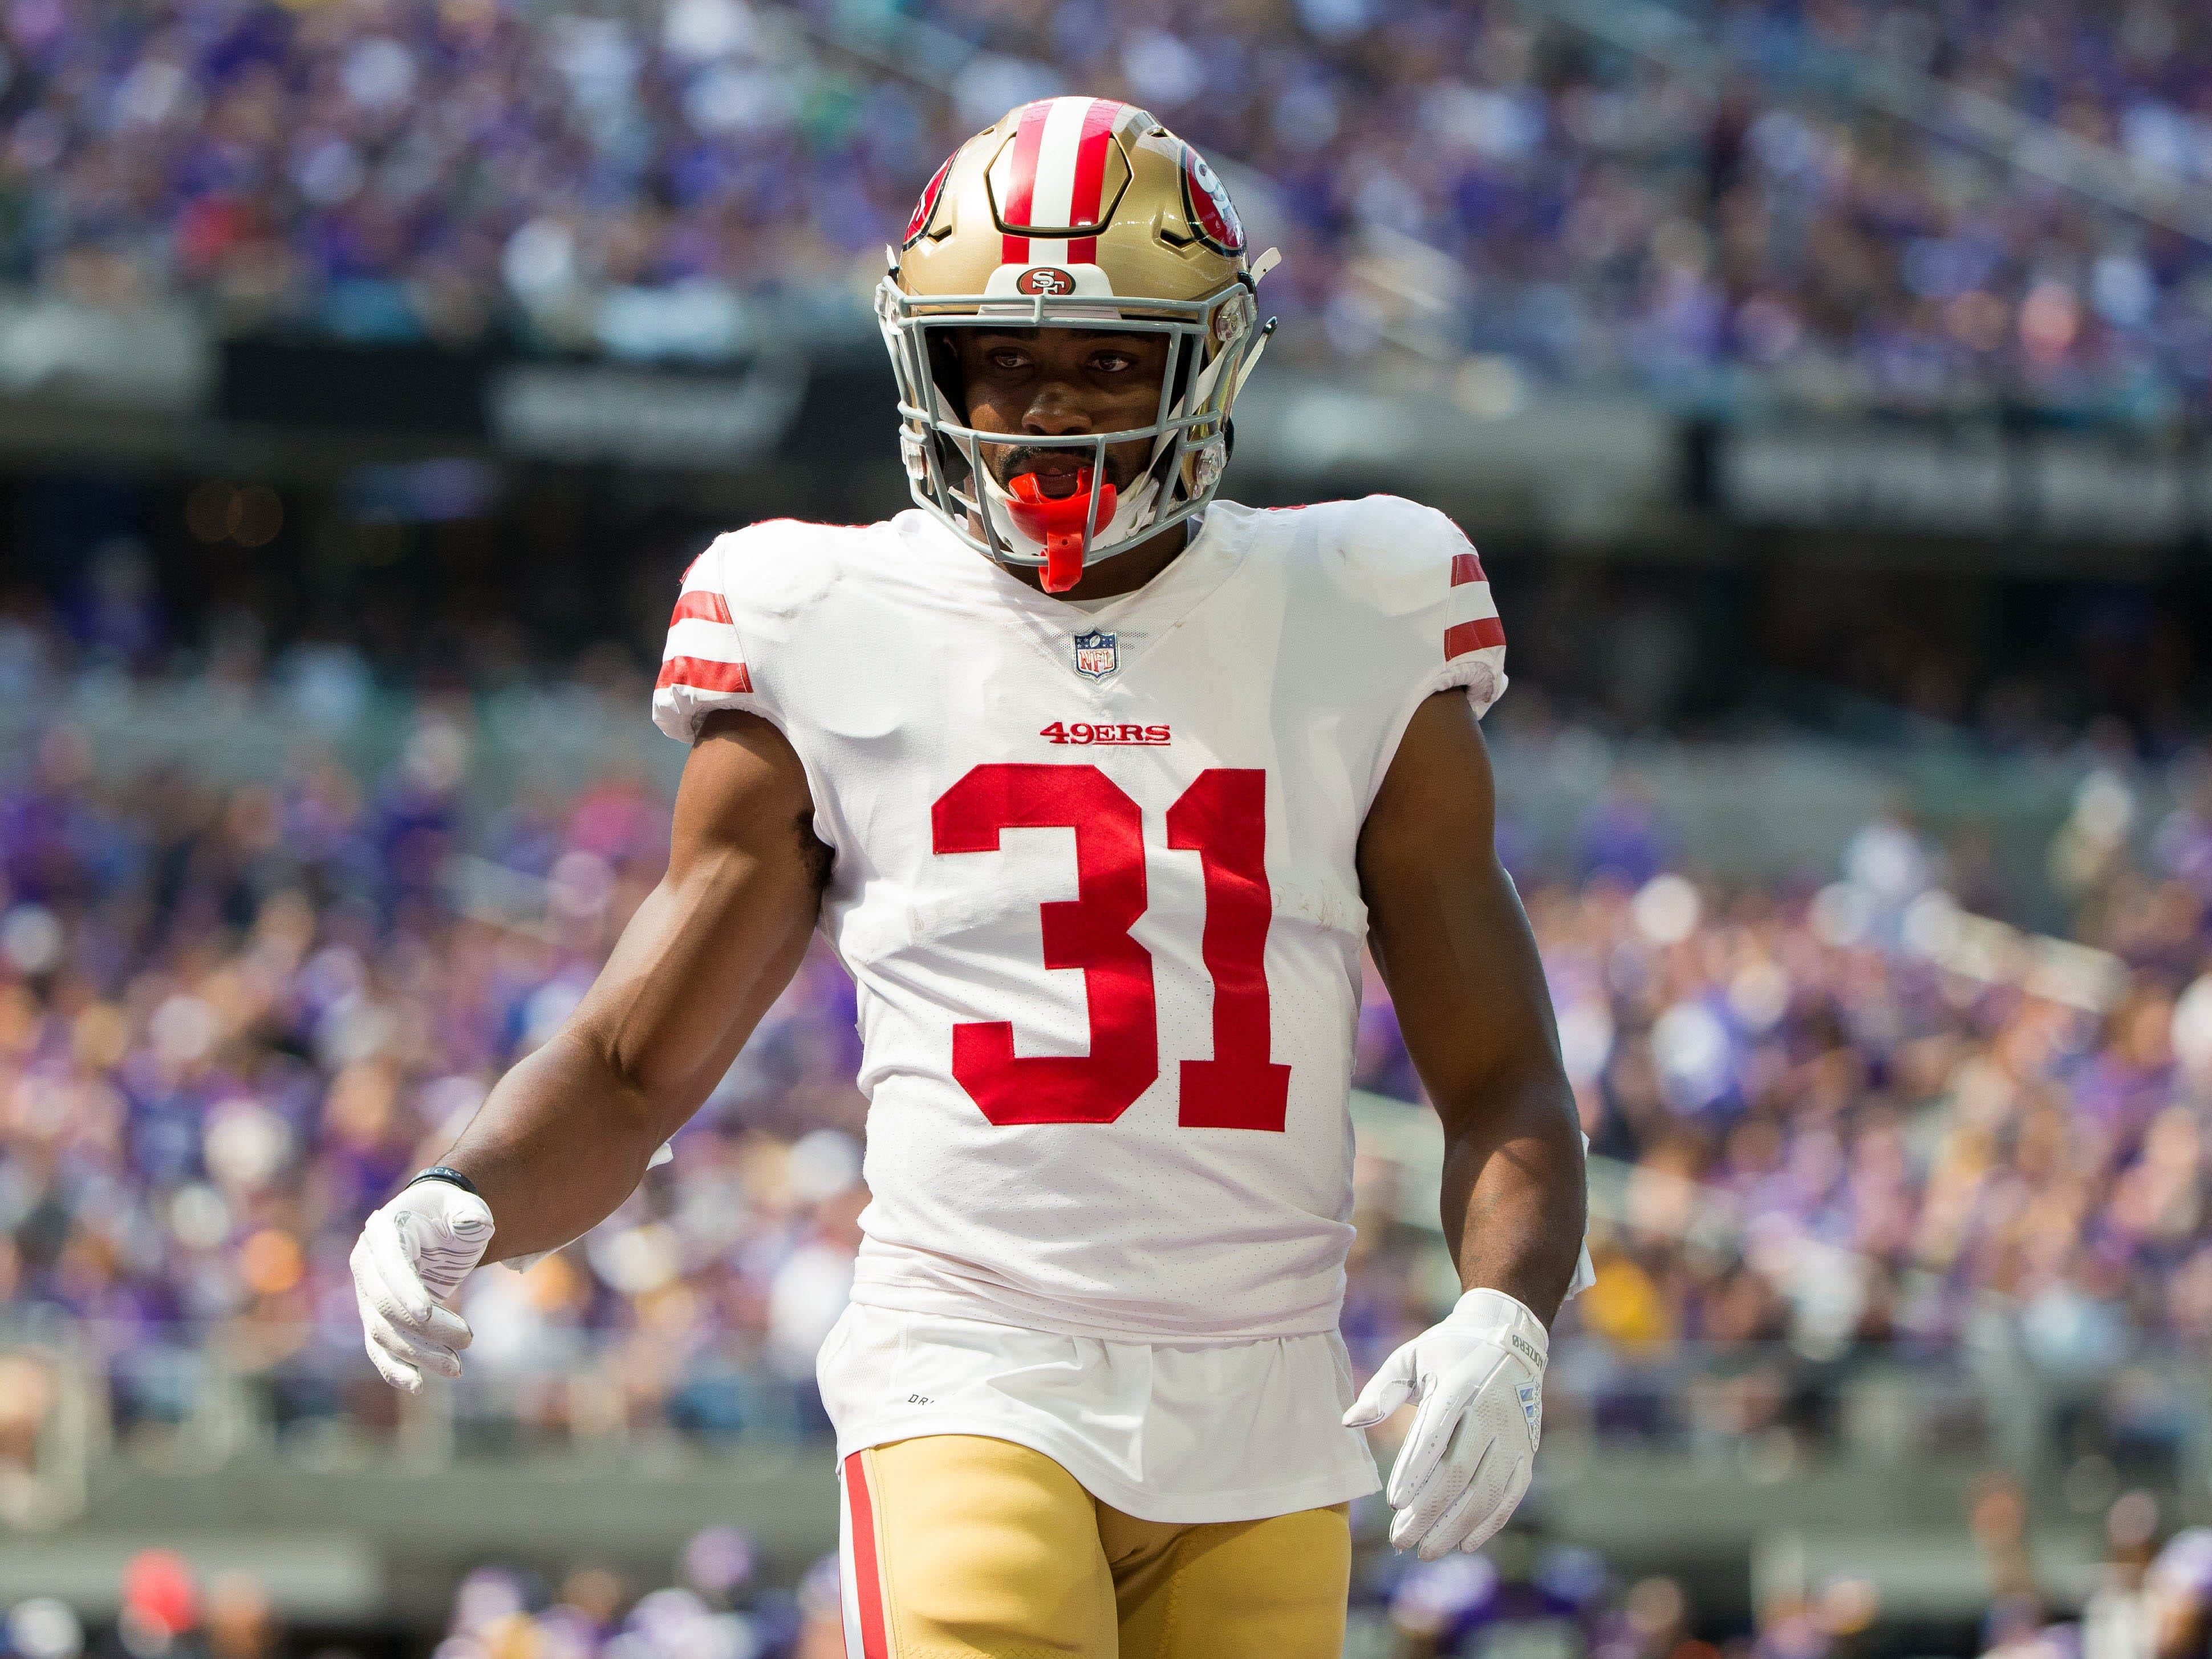 Raheem Mostert, RB, San Francisco 49ers (broken arm, out for season)